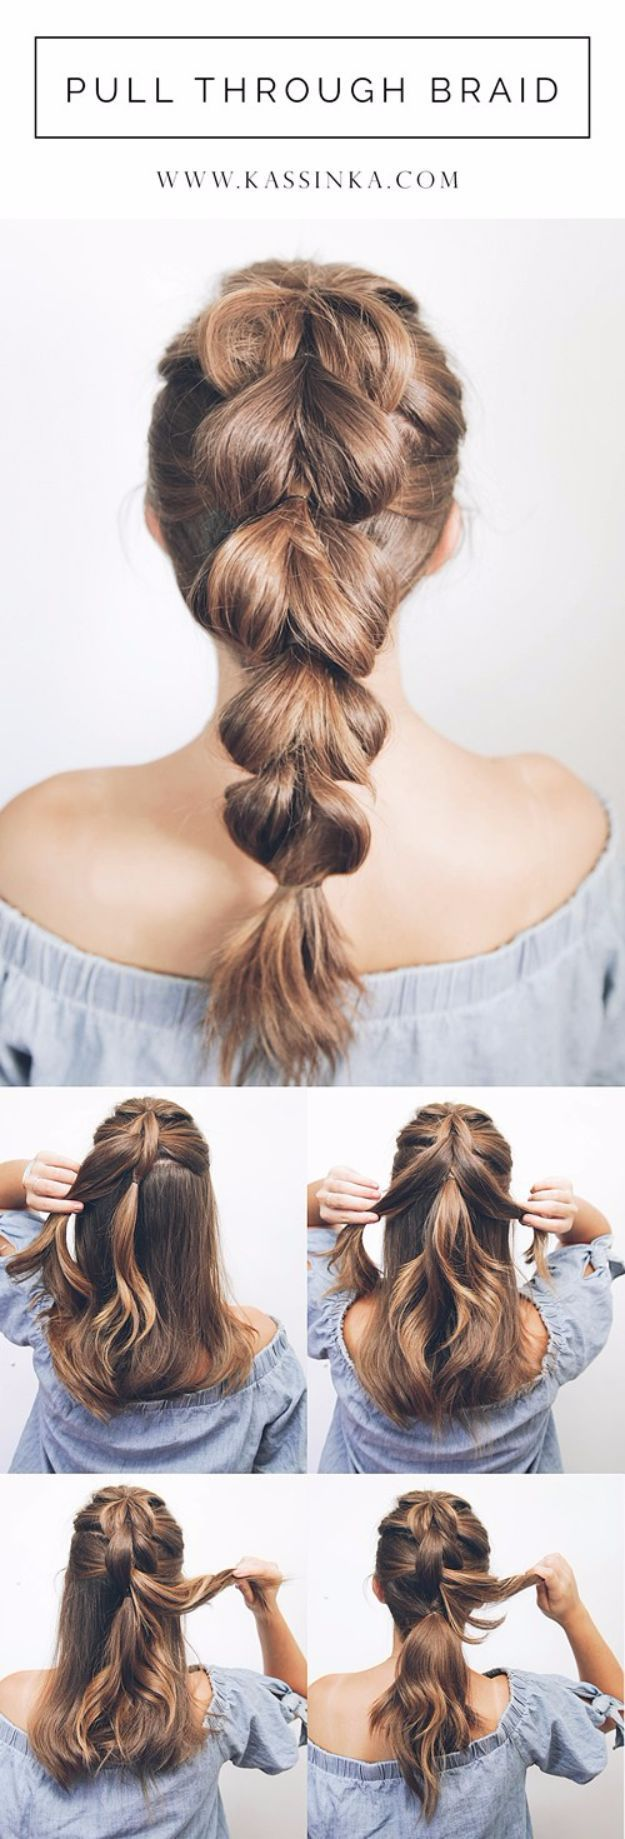 Cool Hair Tutorials For Summer Pull Through Braid Tutorial Easy Hairstyles And Creative Looks For Hair Beachy Waves Hair Kapsels Haartutorials Dik Haar